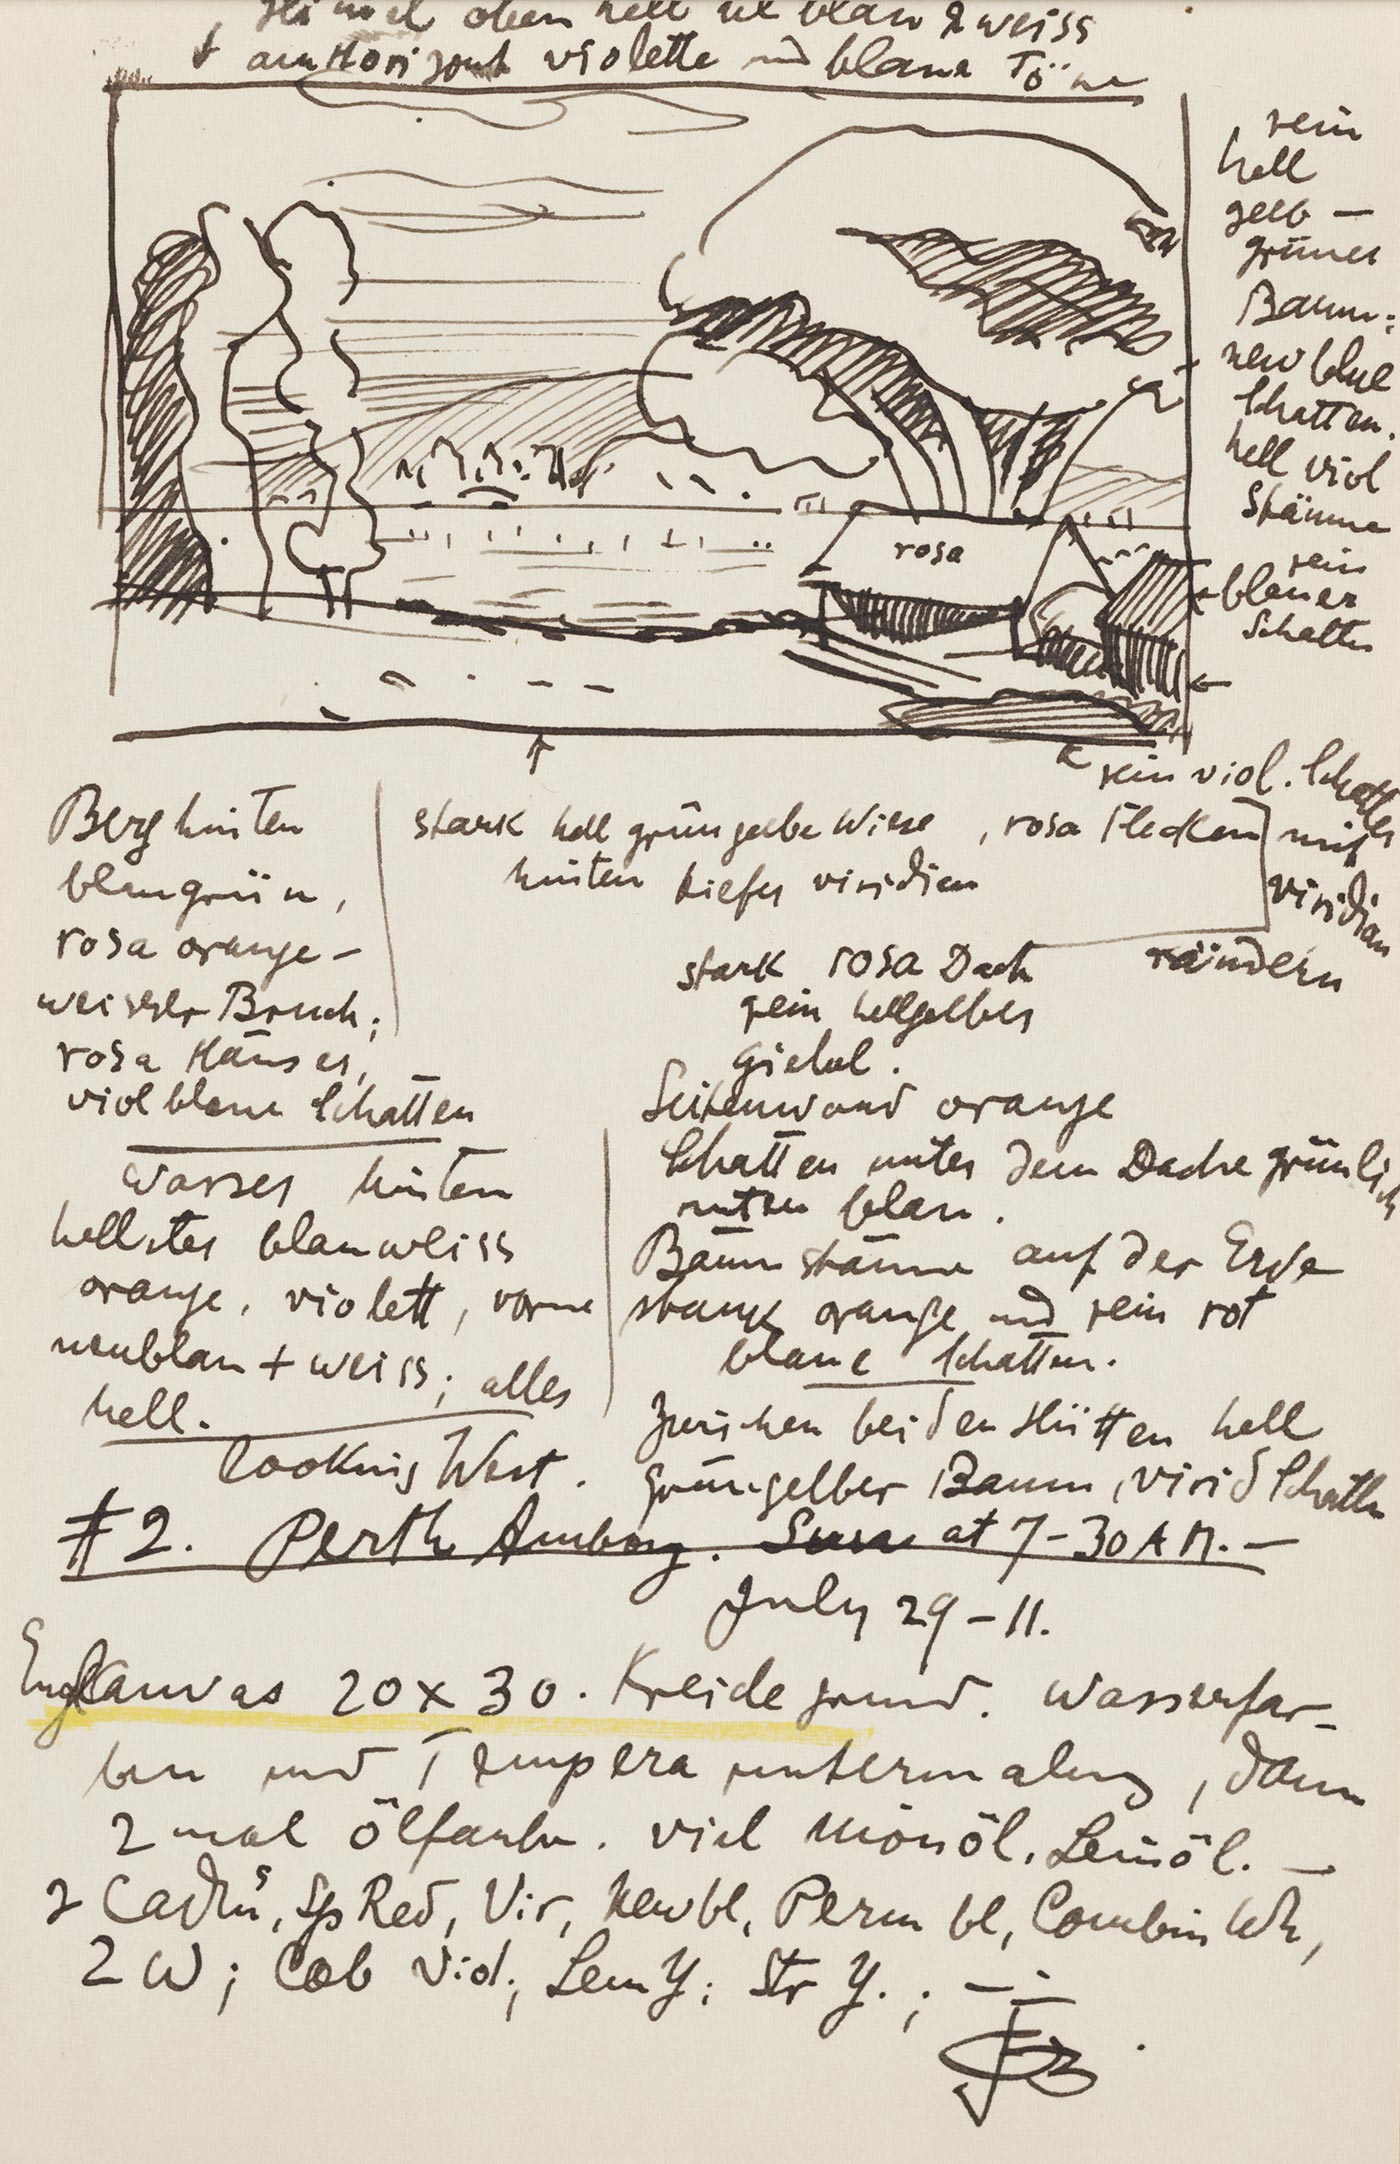 Oscar Bluemner's notes and preparatory sketches about color.